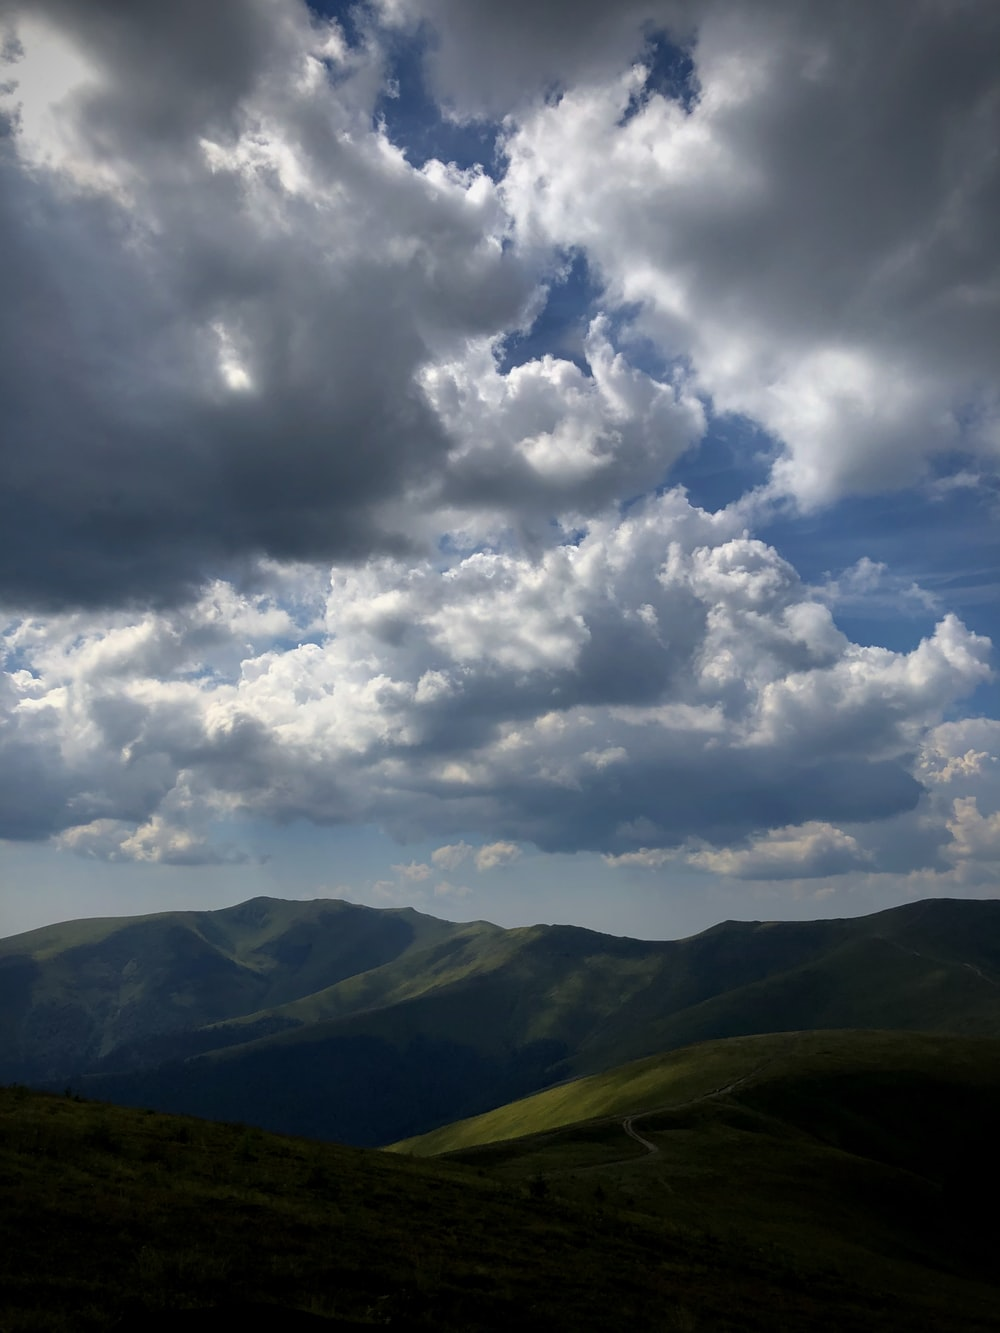 green mountains under white clouds and blue sky during daytime